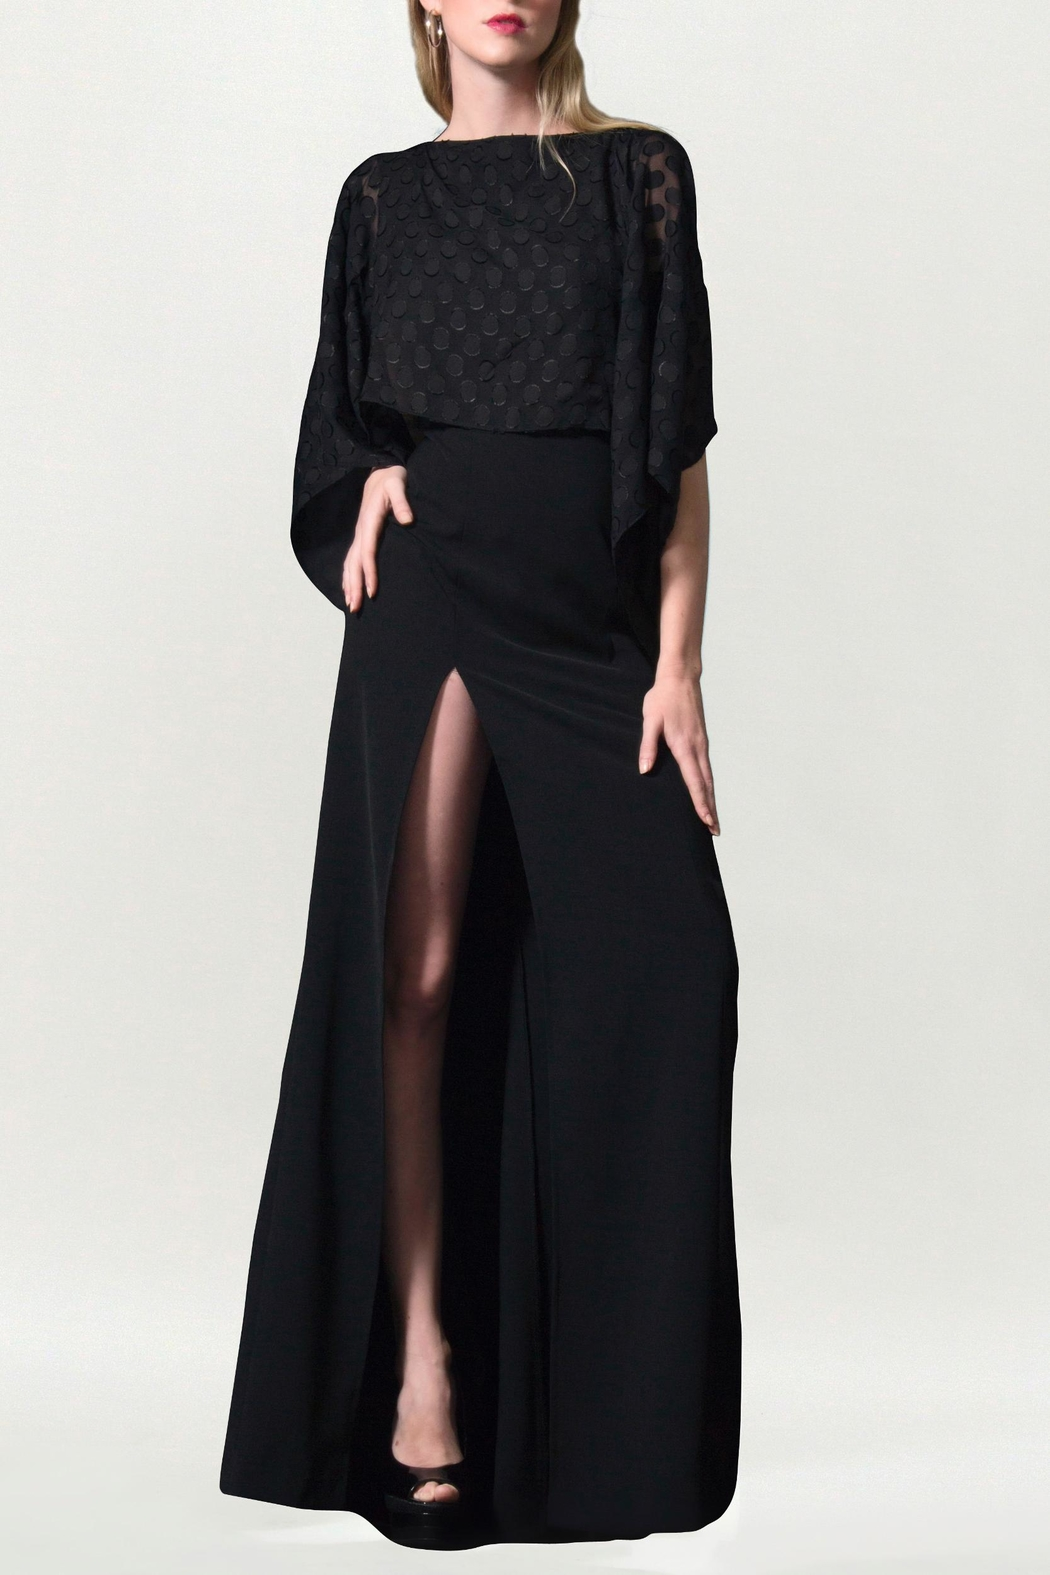 Viesca y Viesca High Slit Maxi Dress - Front Full Image